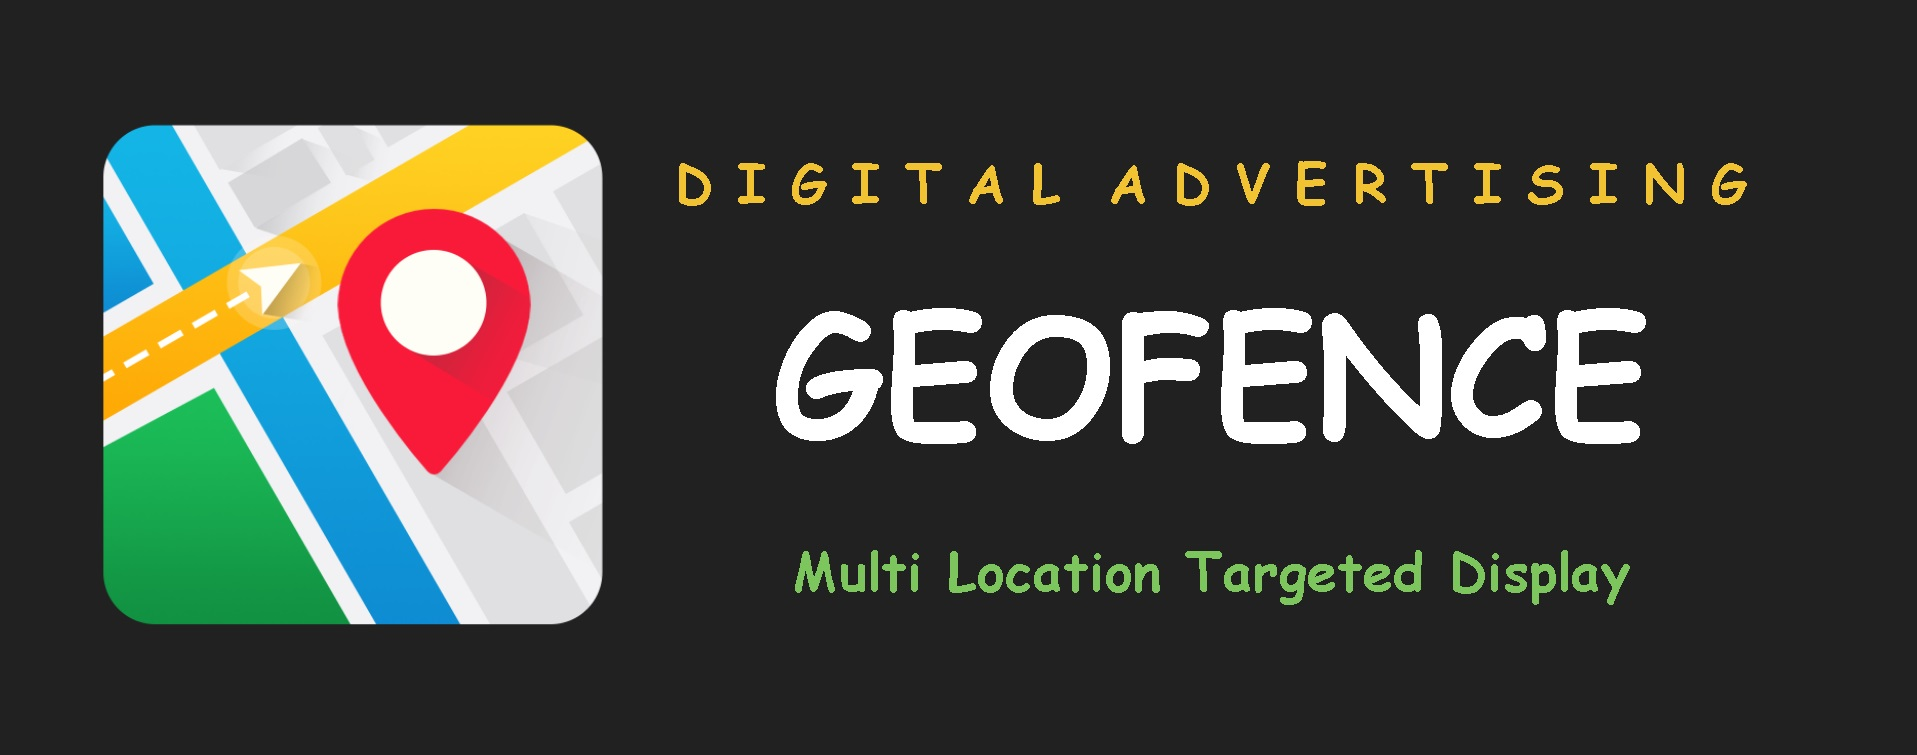 Geofence Digital Marketing - Qualify LLC